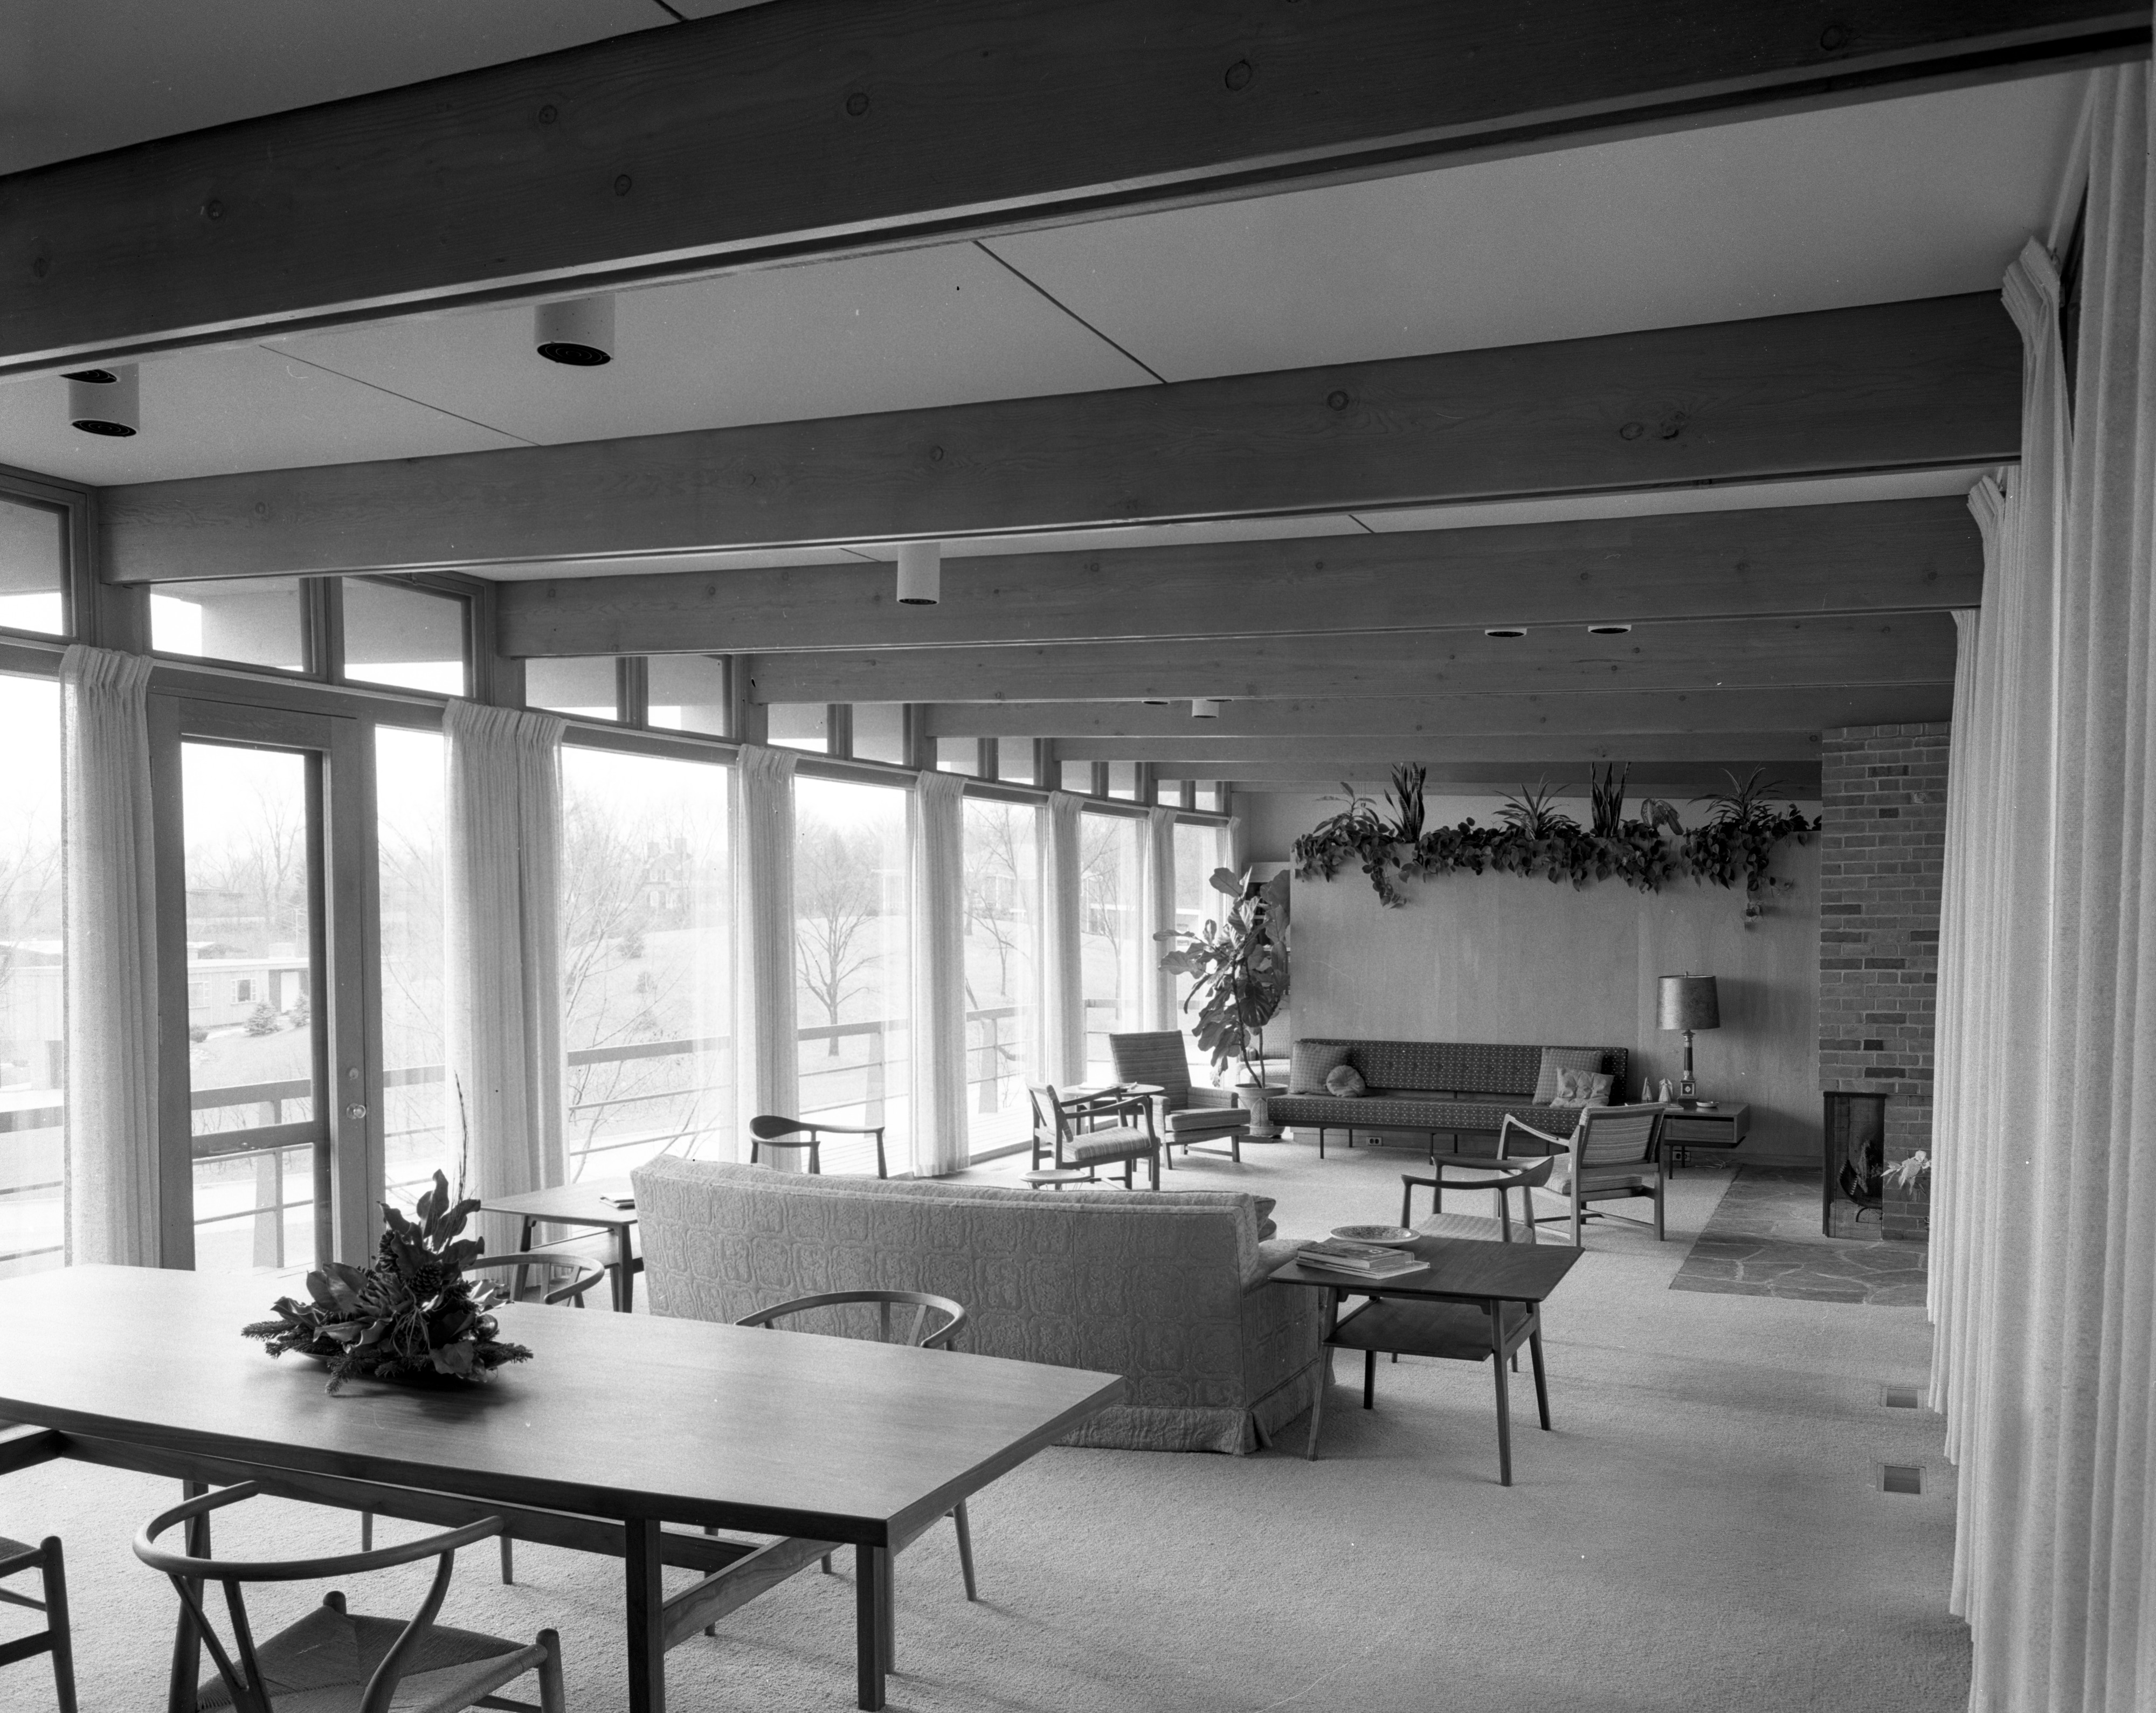 Living Room in Darrell and Jenny Campbell Home, January 1957 image